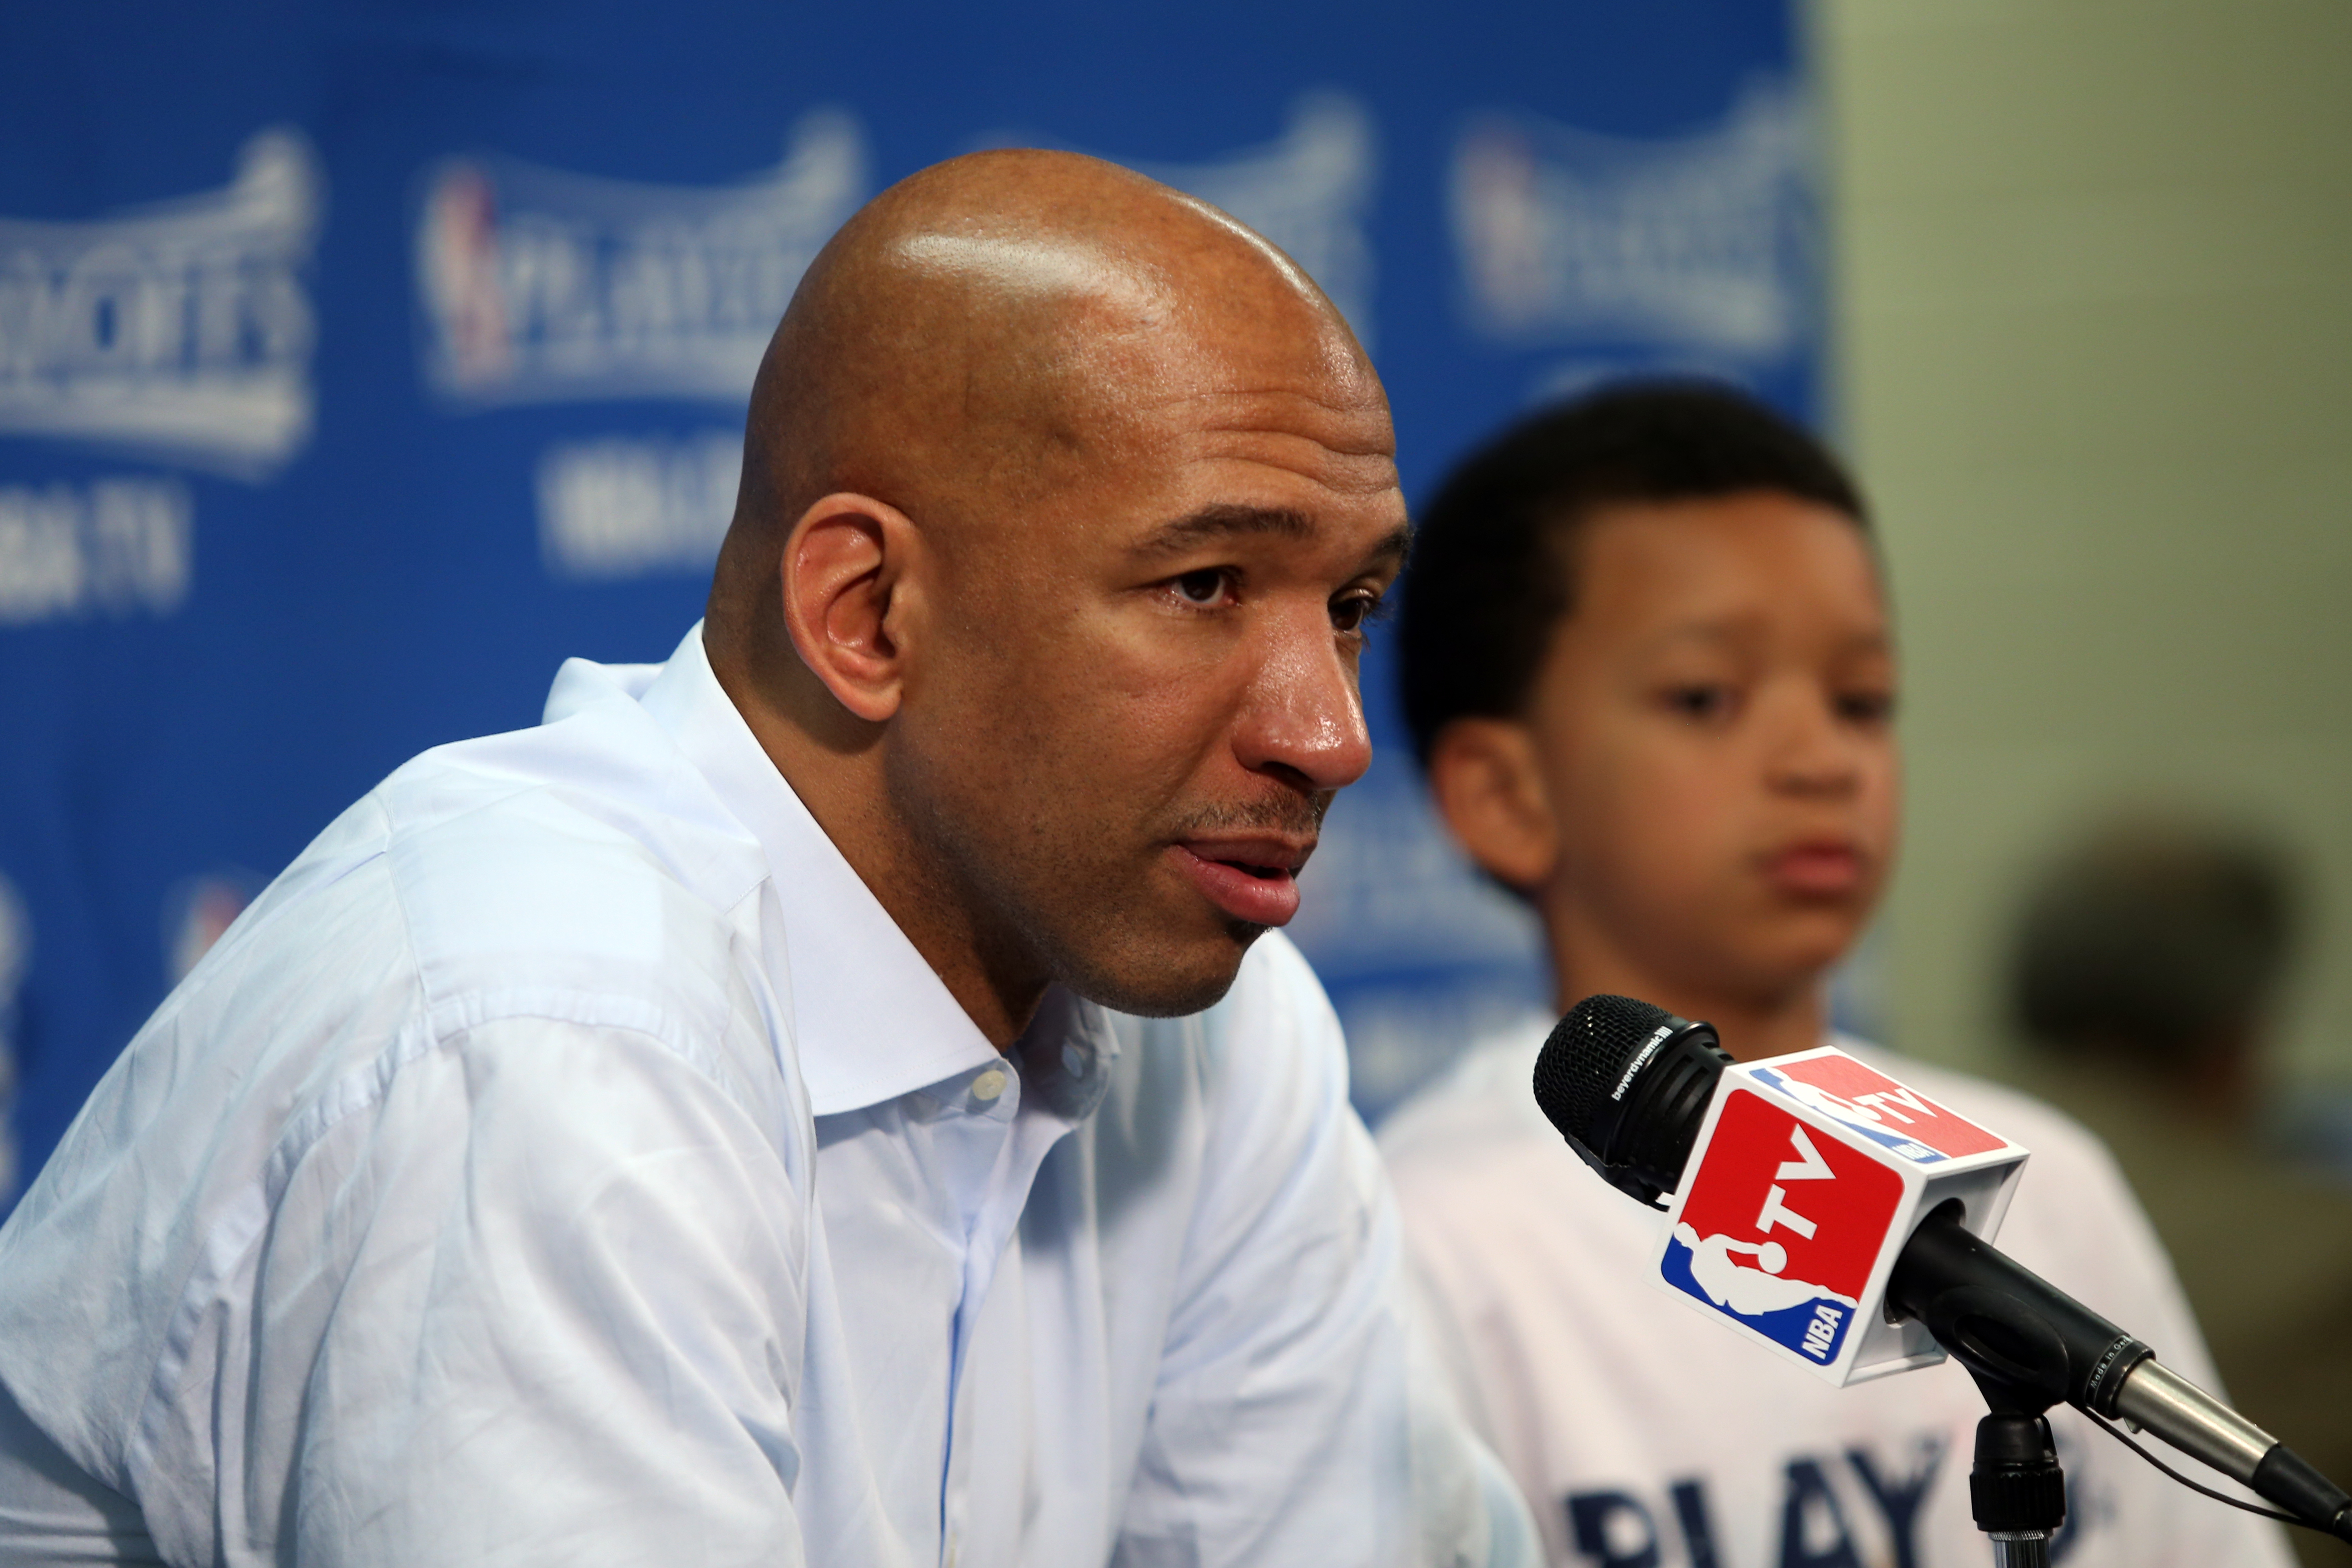 NEW ORLEANS, LA - APRIL 25:  Head Coach Monty Williams of the New Orleans Pelicans talks to the media after Game Four of the Western Conference Quarterfinals against the Golden State Warriors during the 2015 NBA Playoffs on April 25, 2015 at the Smoothie